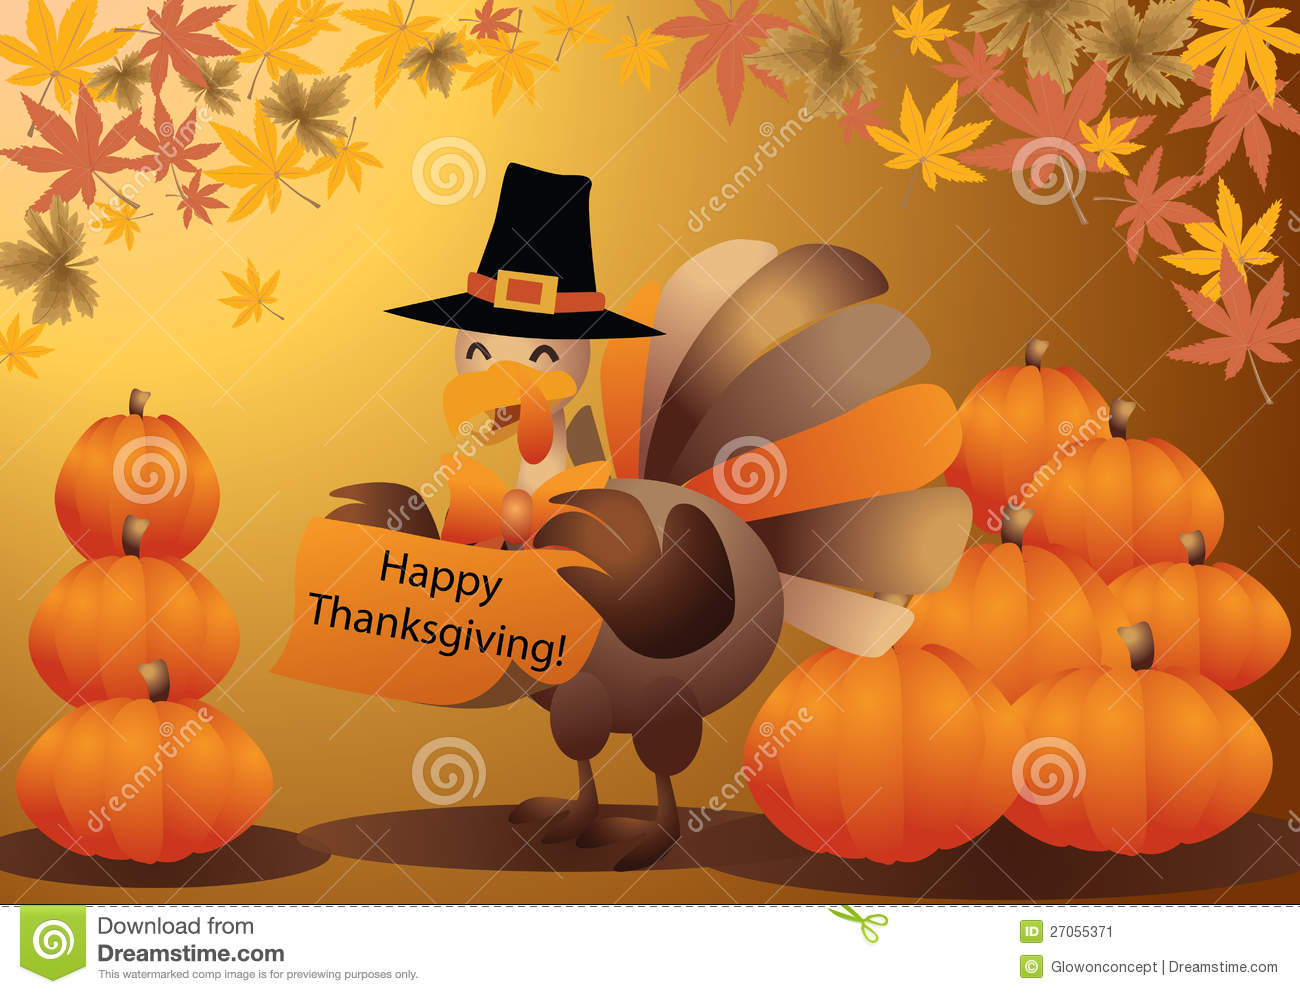 Thanksgiving Turkey Halloween Pumpkin Greeting Car Stock Image - Image ...